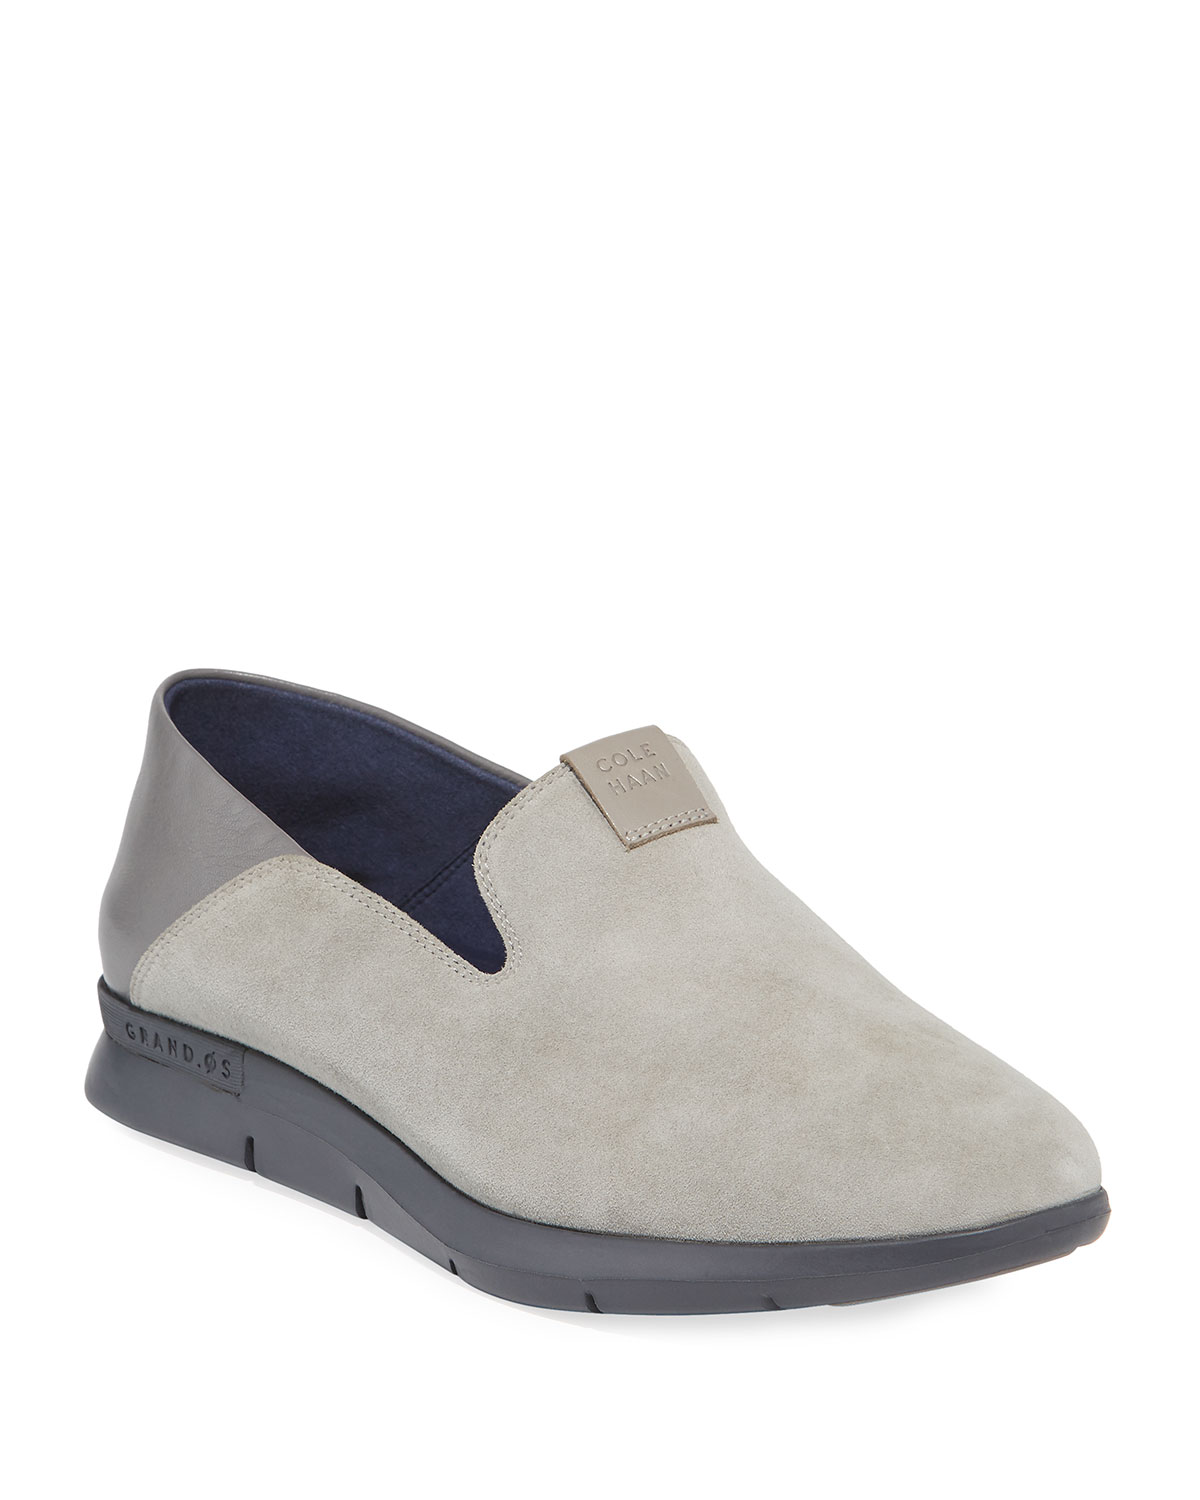 Cole Haan Grand Horizon Slip-On Sneakers, Gray